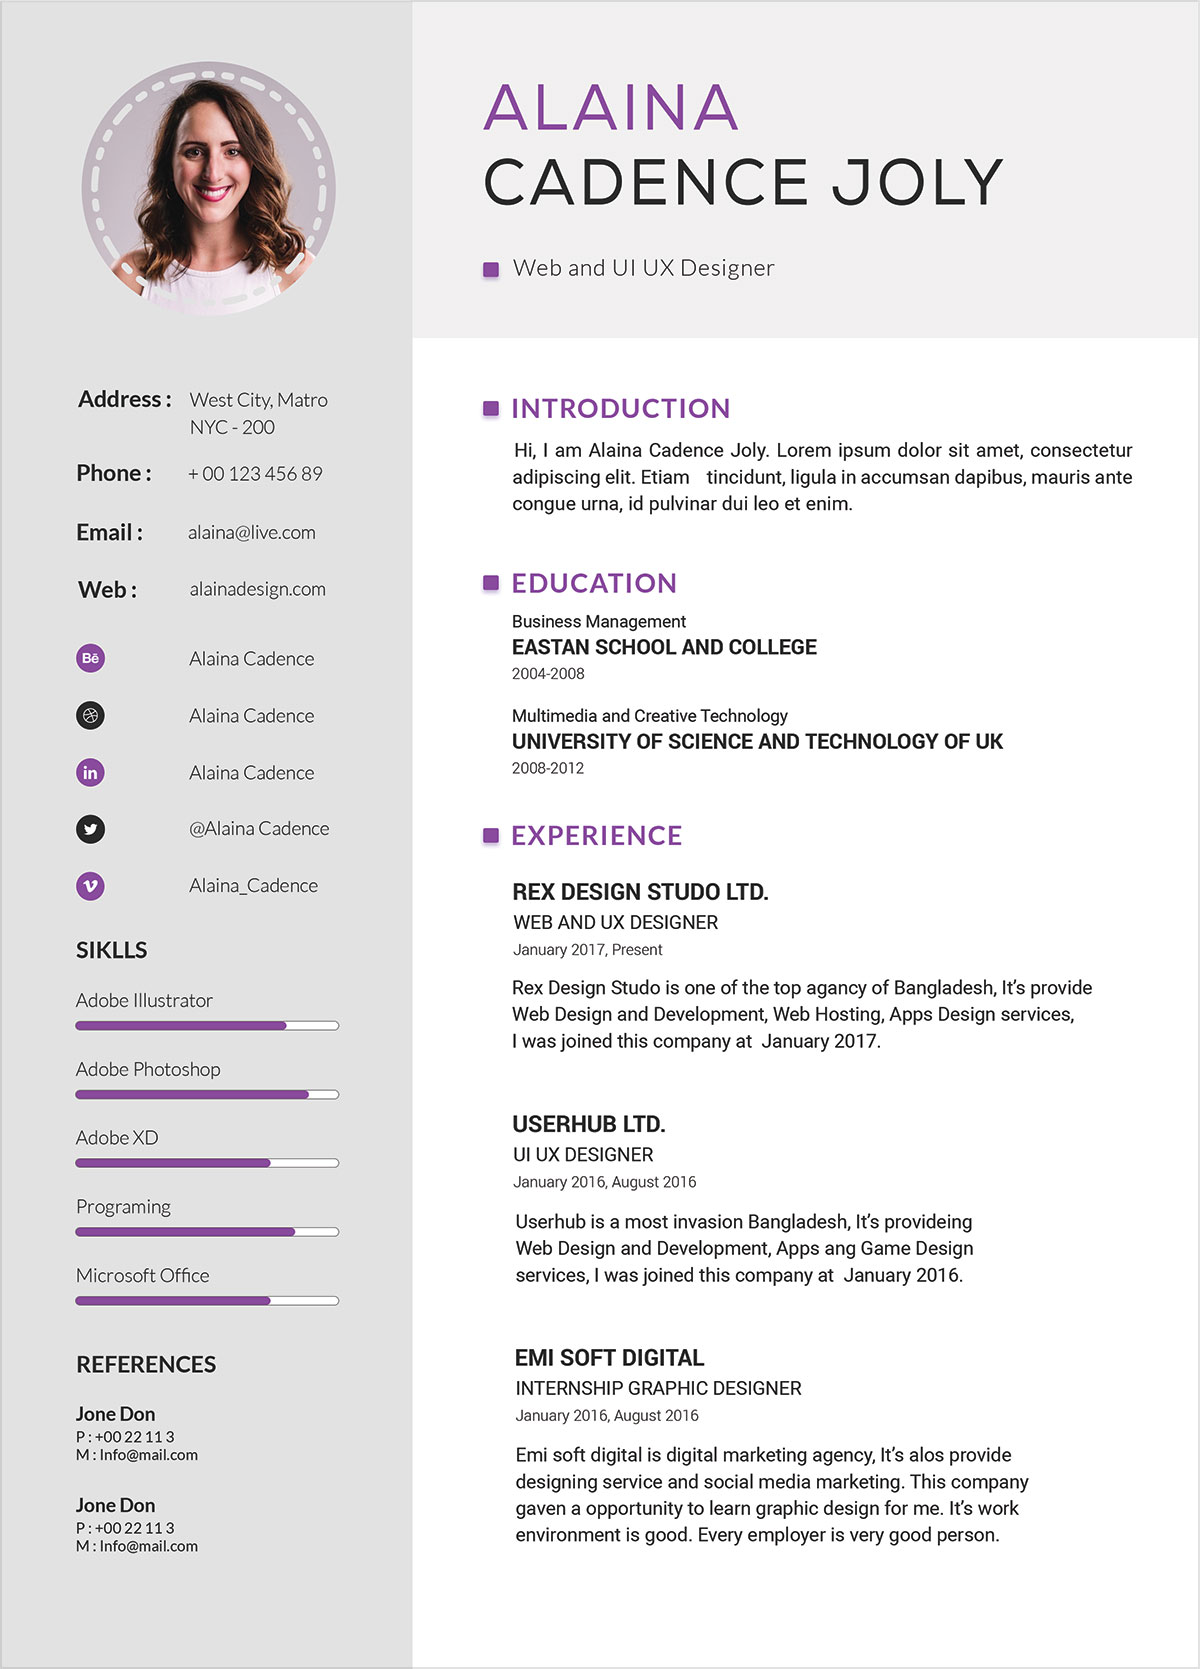 What Size Font Should A Resume Be Typed In Free Clean And Professional Resume With Cover Letter Psd